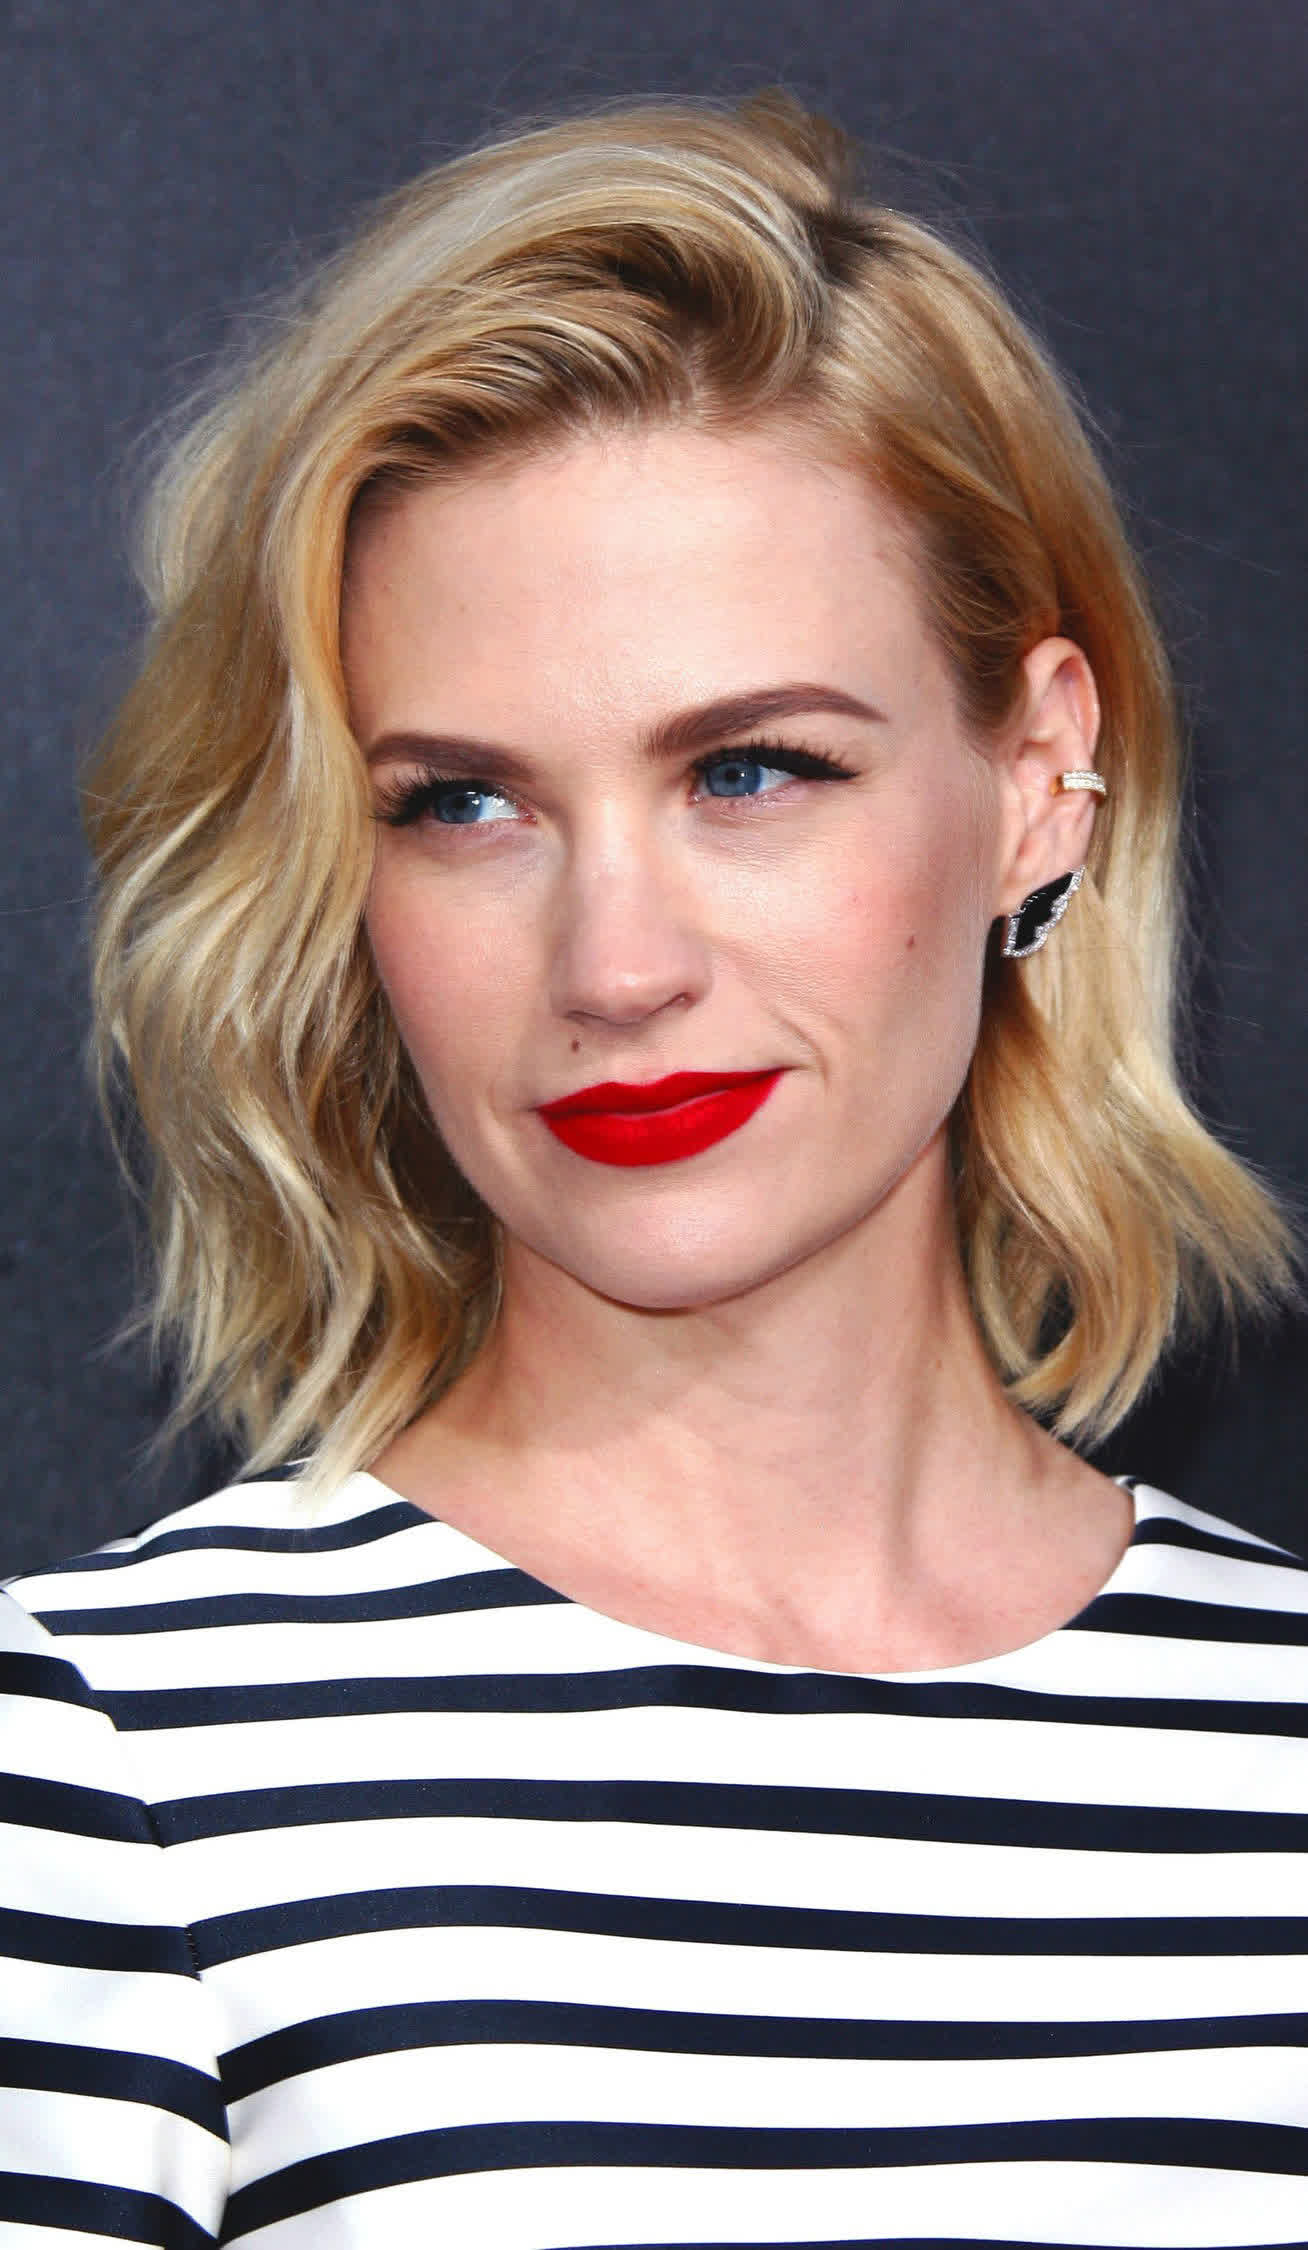 Fappening January Jones born January 5, 1978 (age 40) naked photo 2017